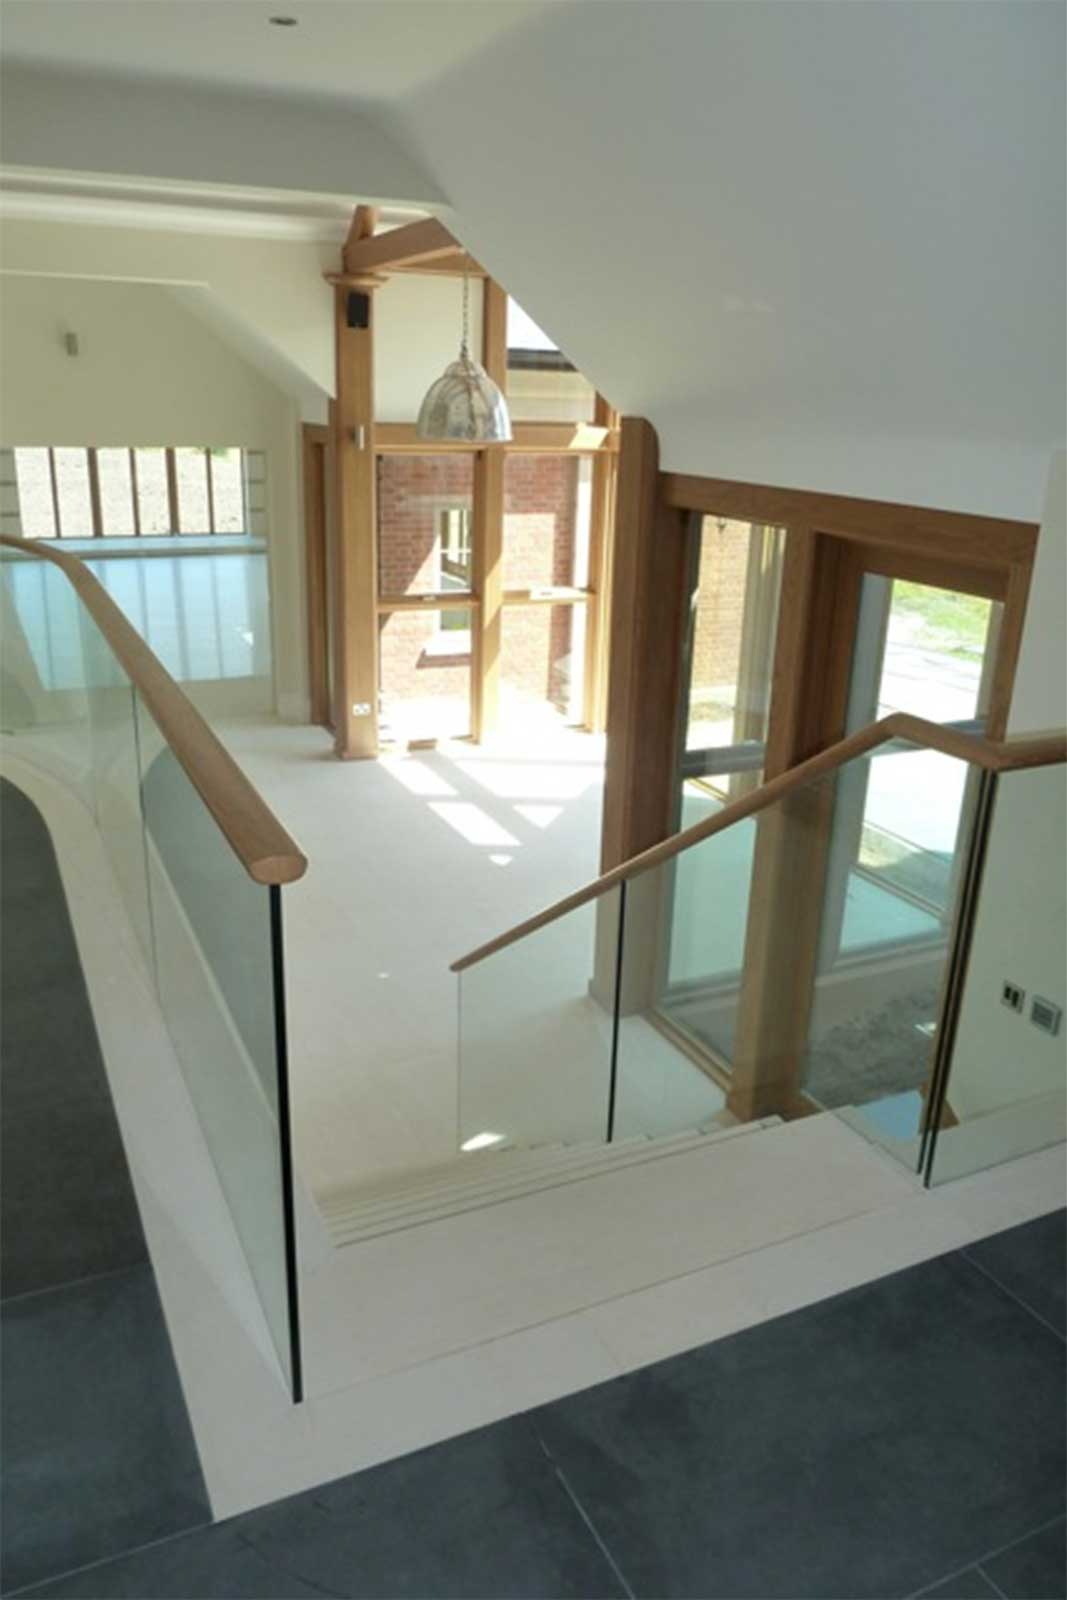 Frameless Glass Balustrade with Wooden Handrail